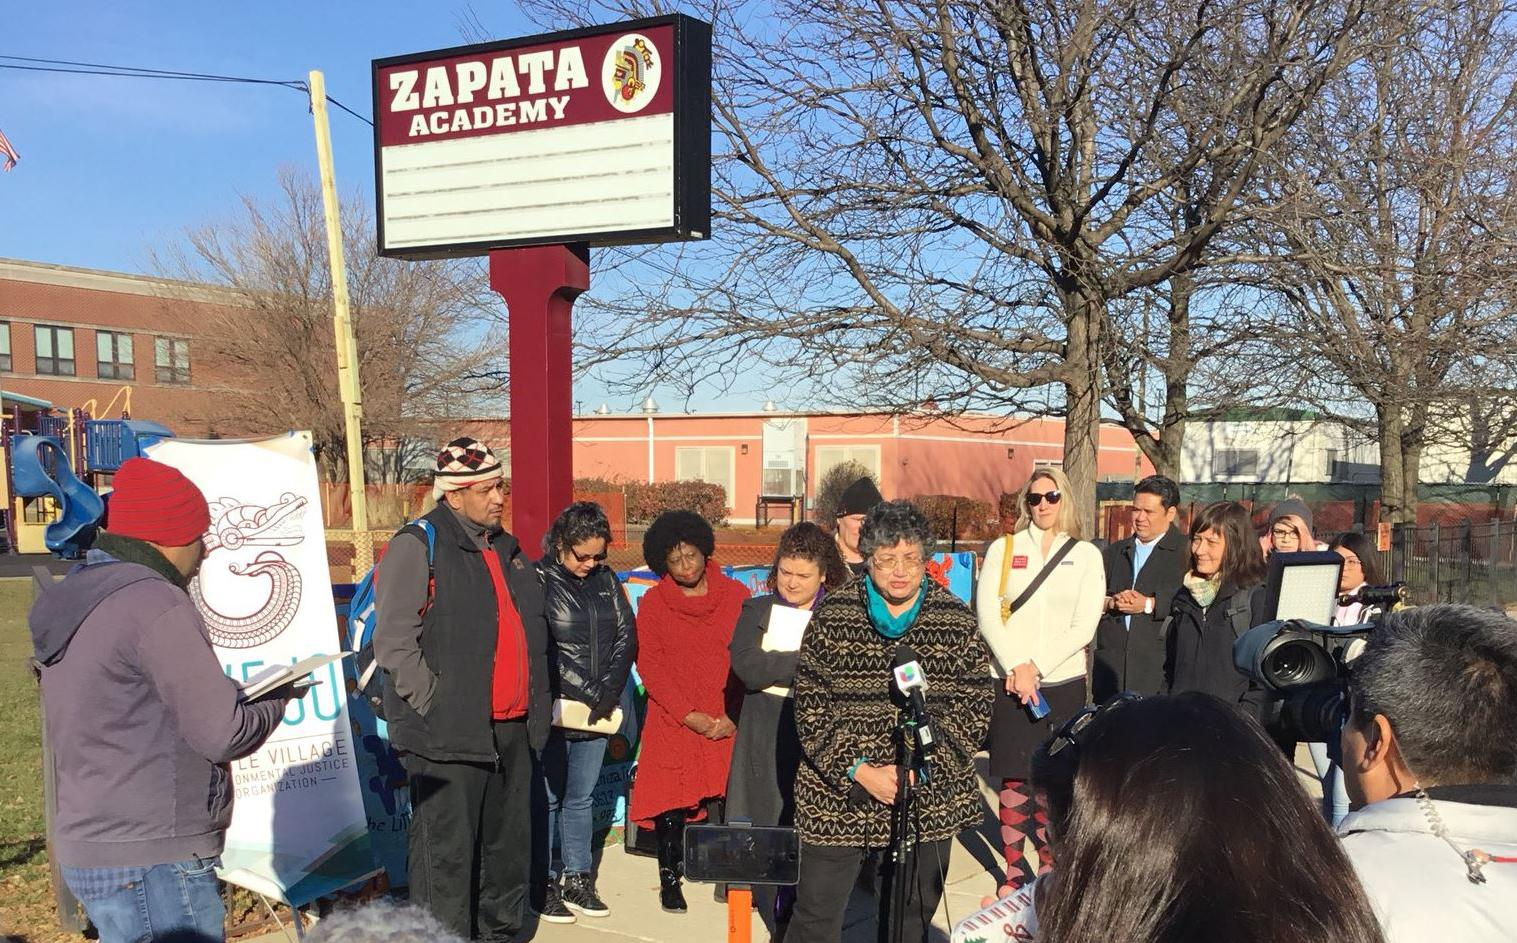 Peggy Salazar, director of the Southeast Environmental Task Force, speaks during a press conference Friday calling on Chicago to step up efforts to combat pollution on the city's South and West Sides. (Courtesy Little Village Environmental Justice Organization)